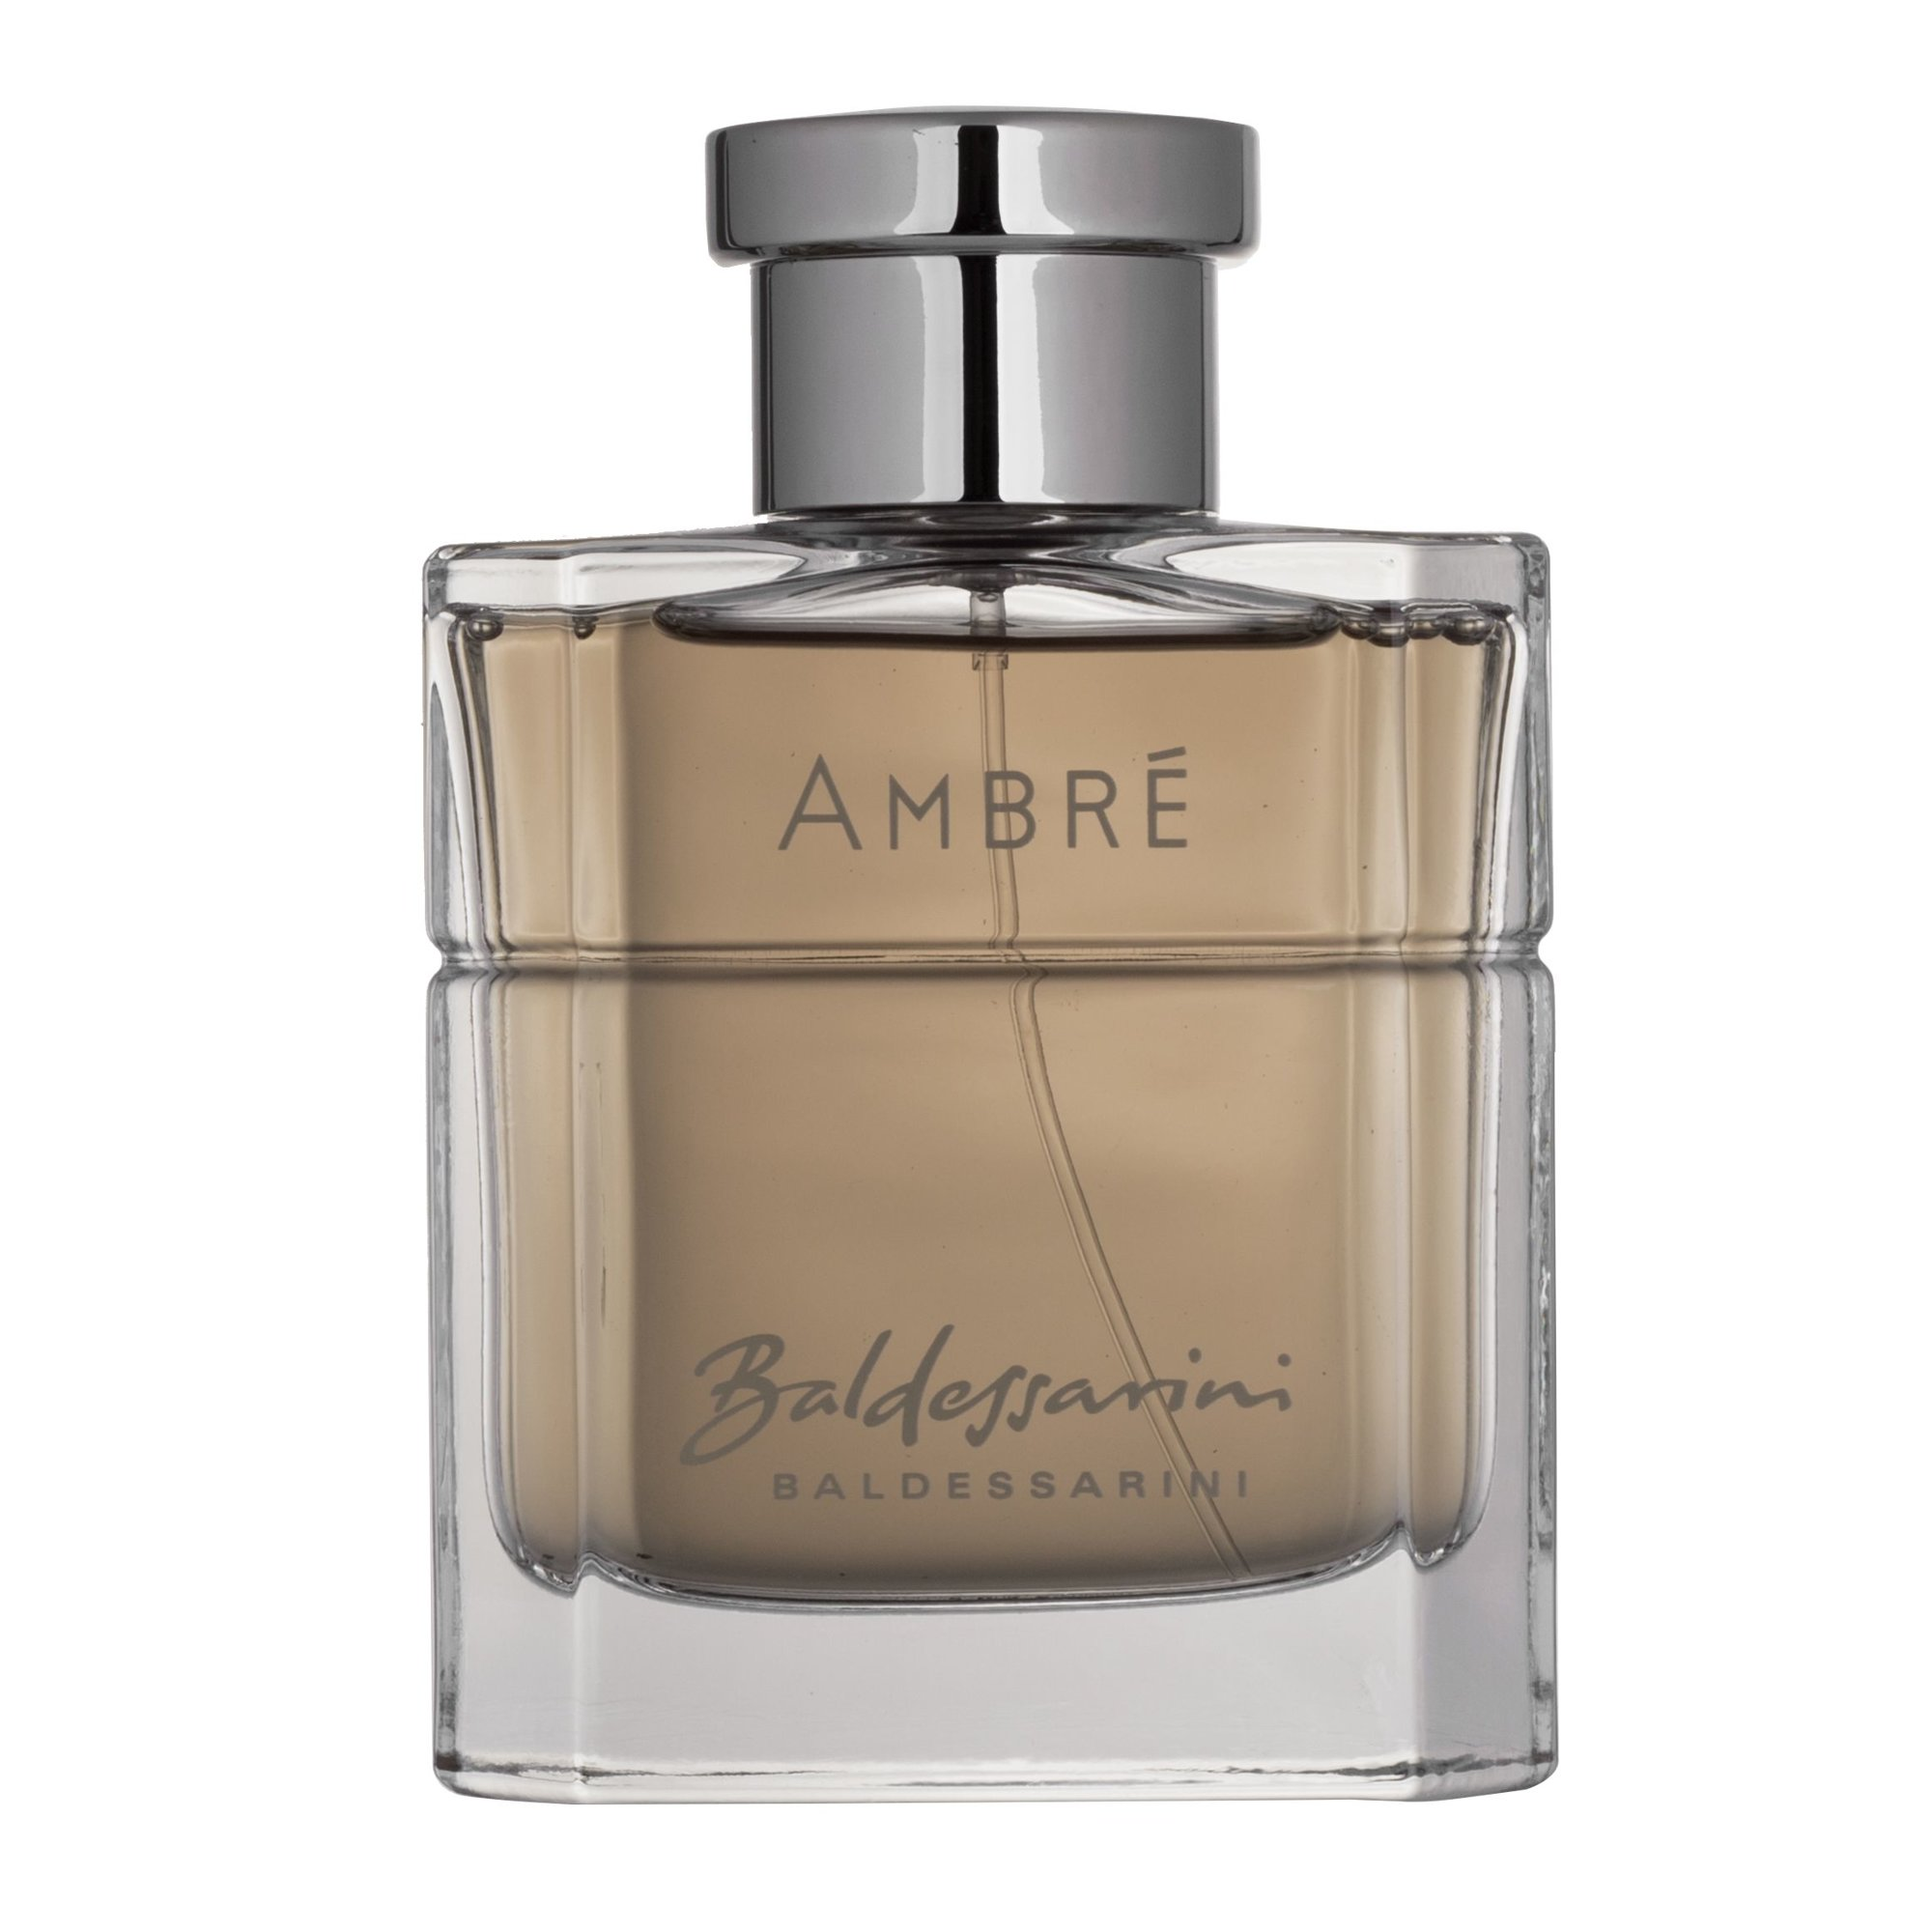 Baldessarini Ambré EDT 90ml